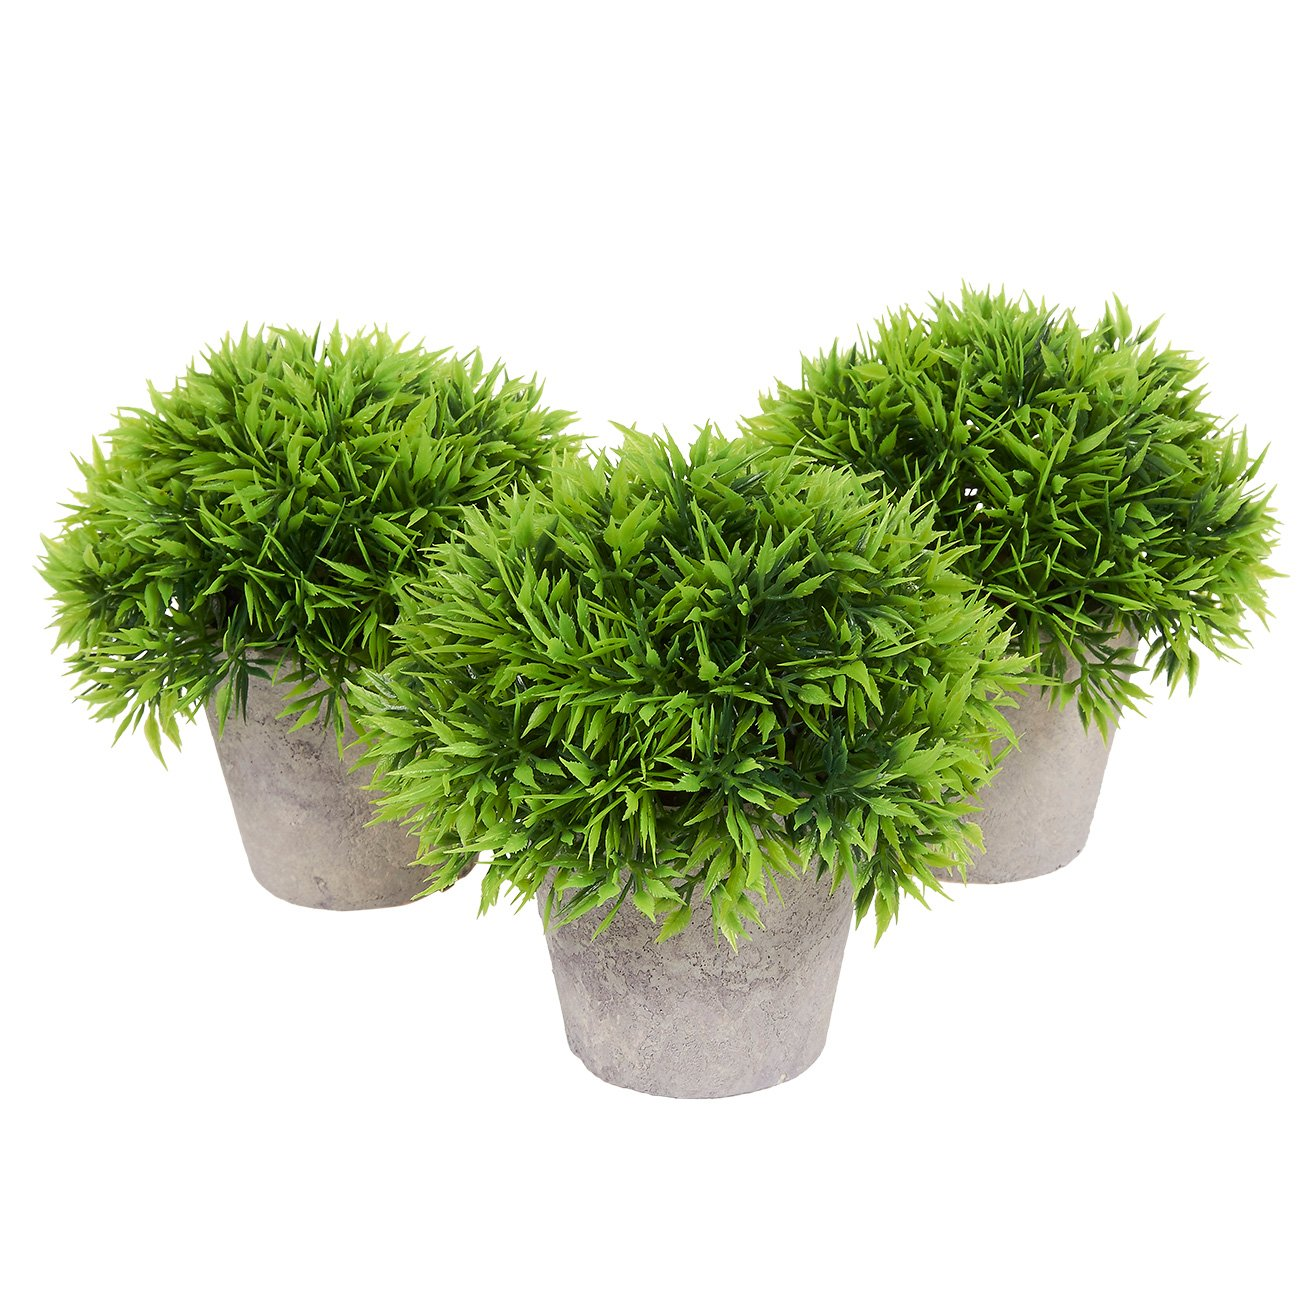 Fake Plant Decoration - Set of 3 Potted Artificial House Plants - Fake Plant Decor, Green Decorative Small Artificial Plants, for Home DecorIndoor, with White Paper Pulp Pots - 5 x 4.2 x 5 Inches Juvale